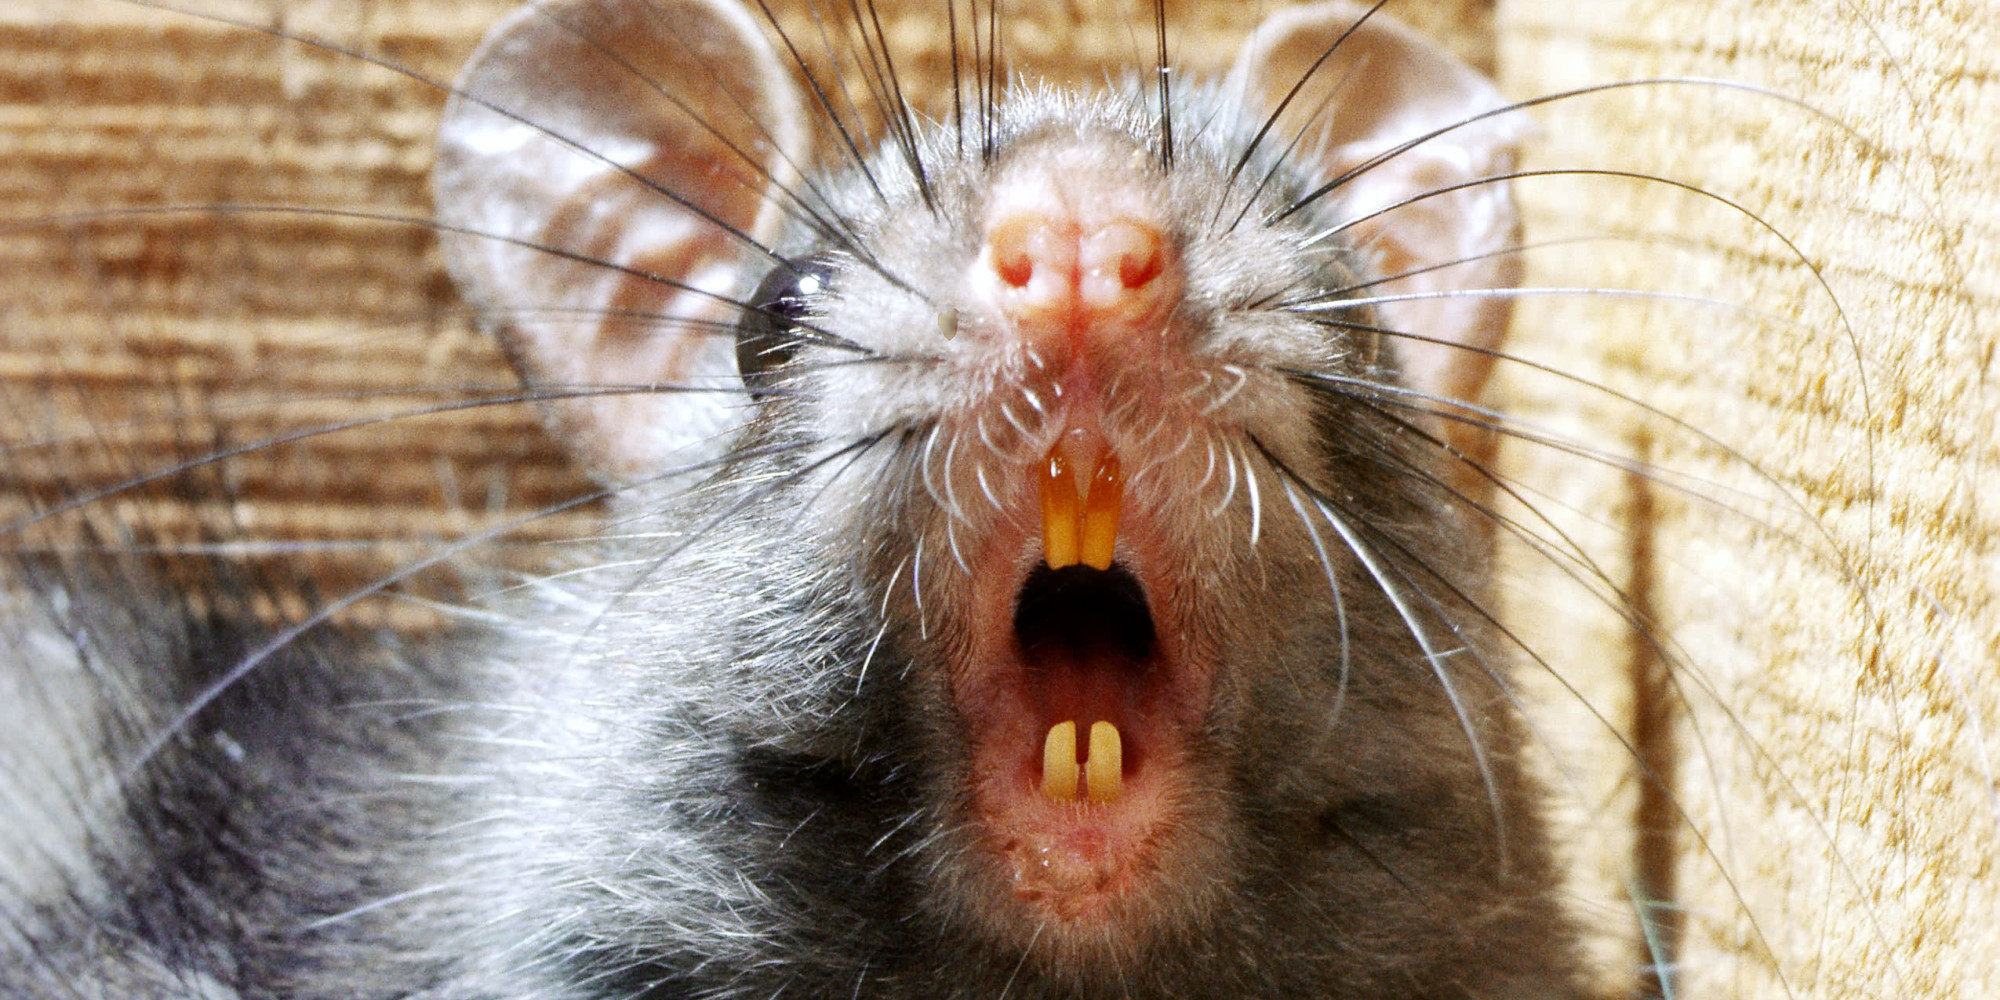 rats so big the cats are scared u0027 worry englewood neighbors huffpost